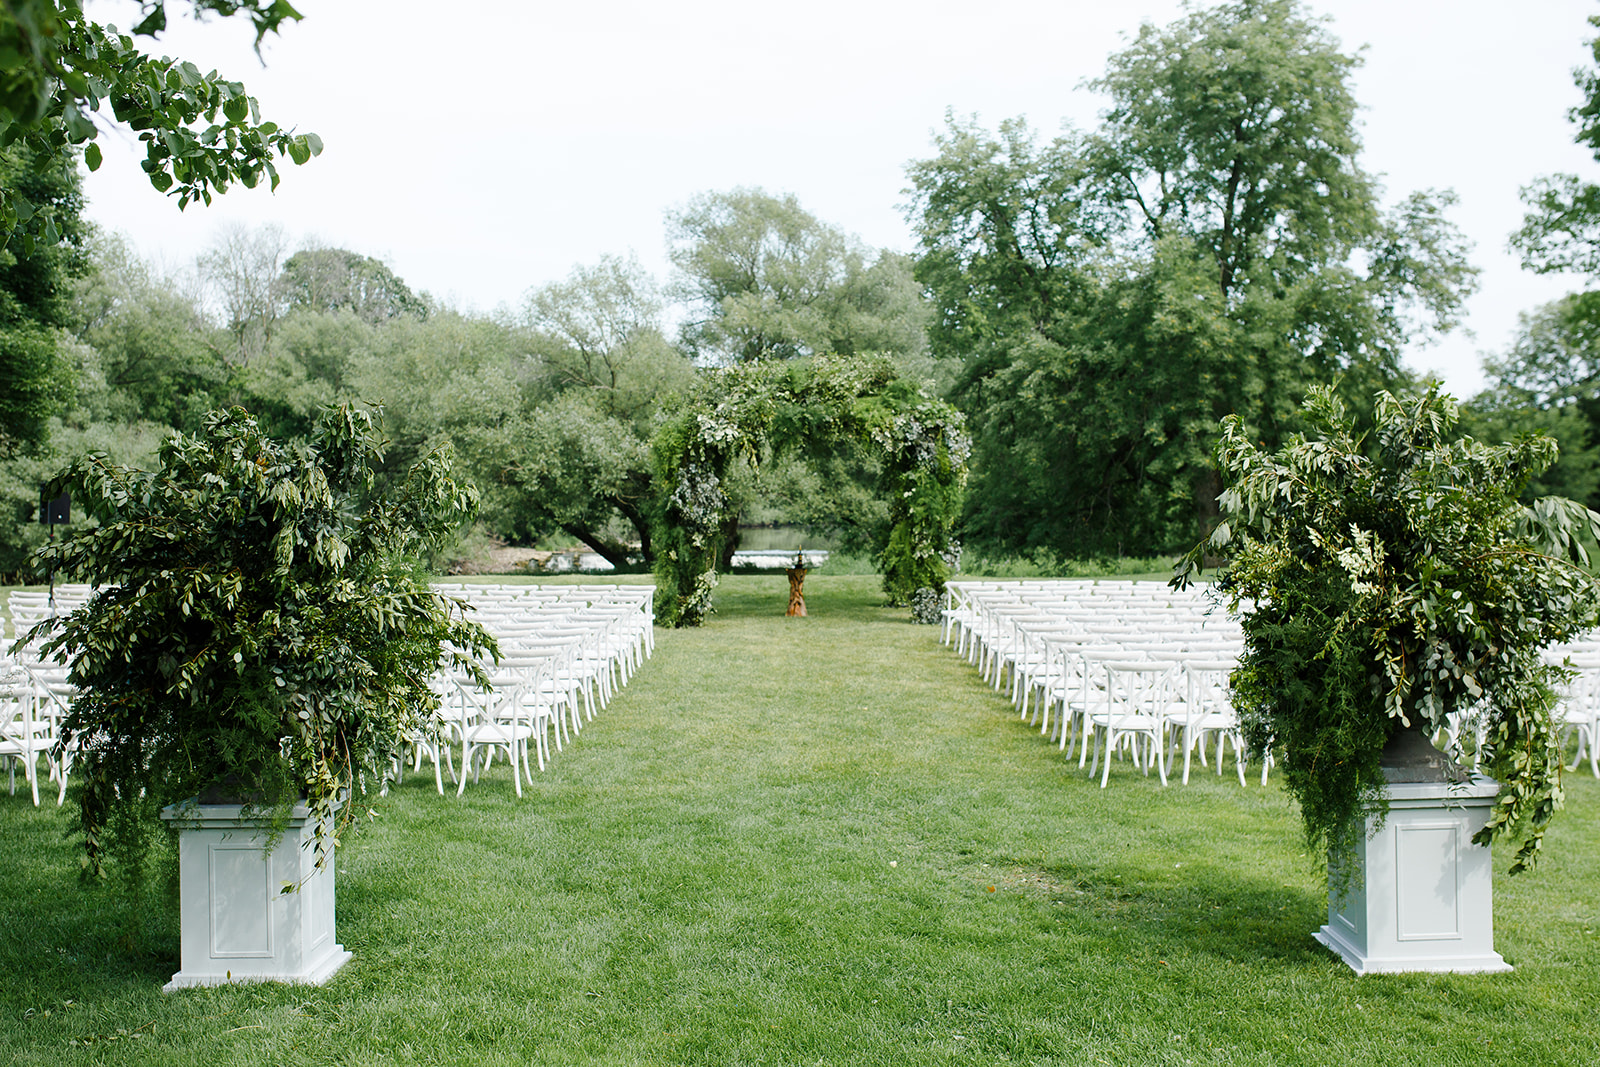 Greenery wedding ceremony outdoor garden design by HMR Designs and Rishi Patel for event in Kohler, Wisconsin